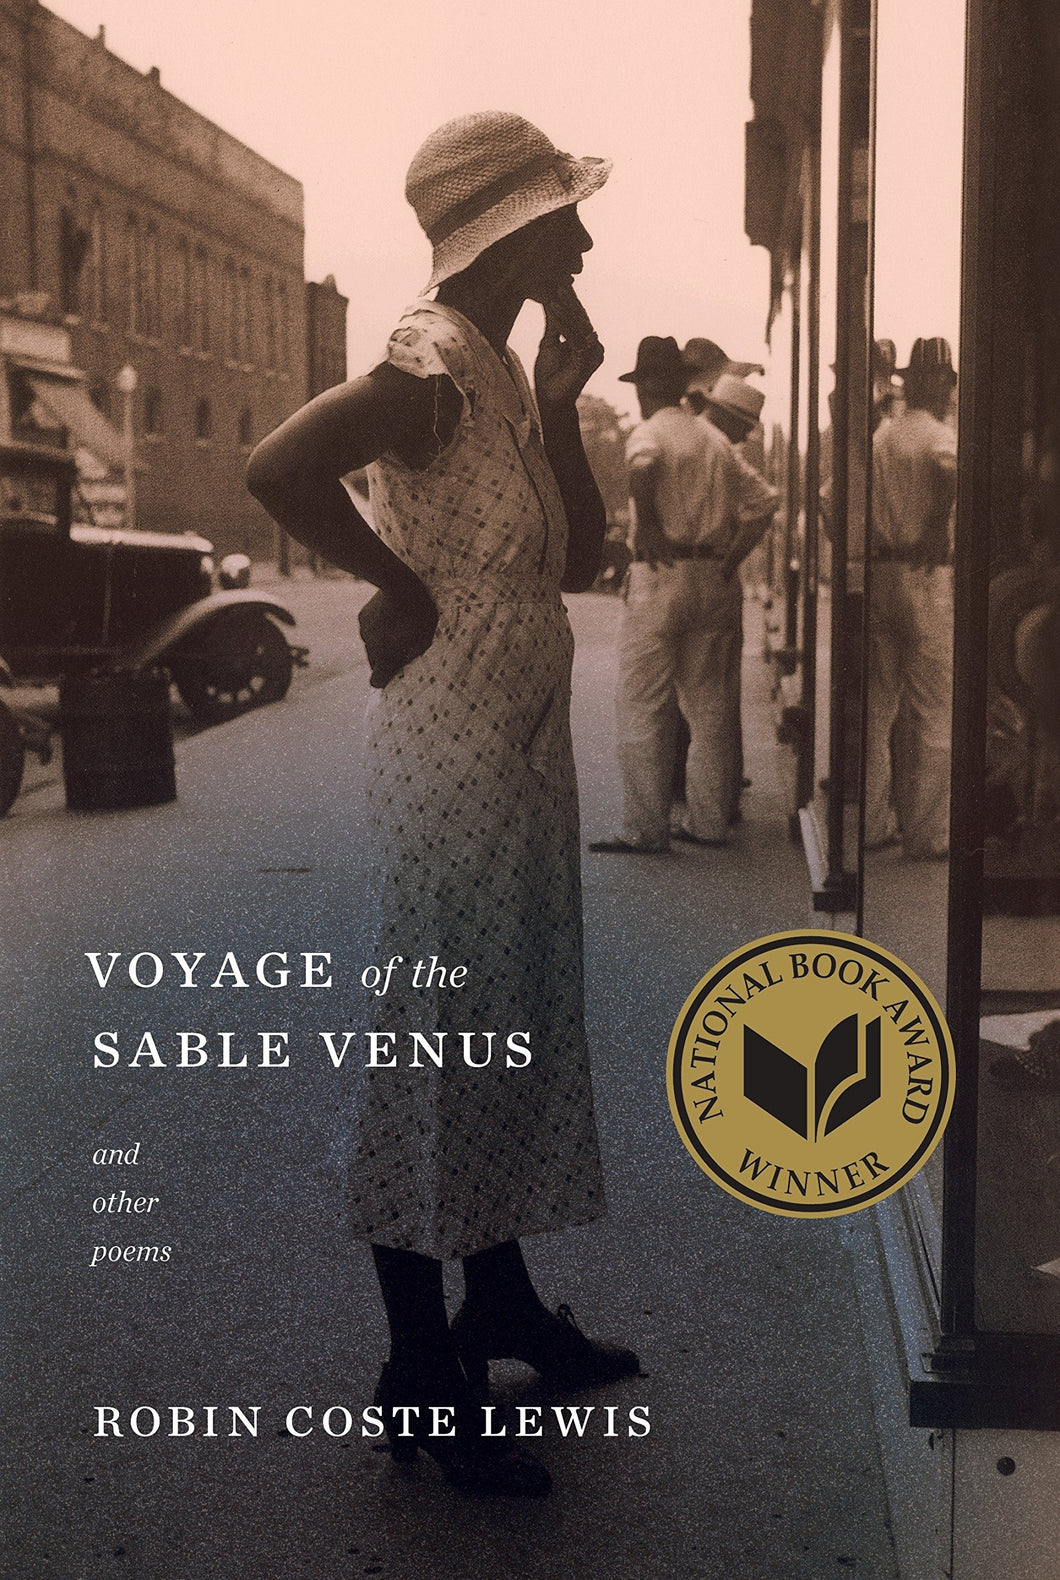 Voyage of the Sable Venus & Other Poems by Robin Coste Lewis